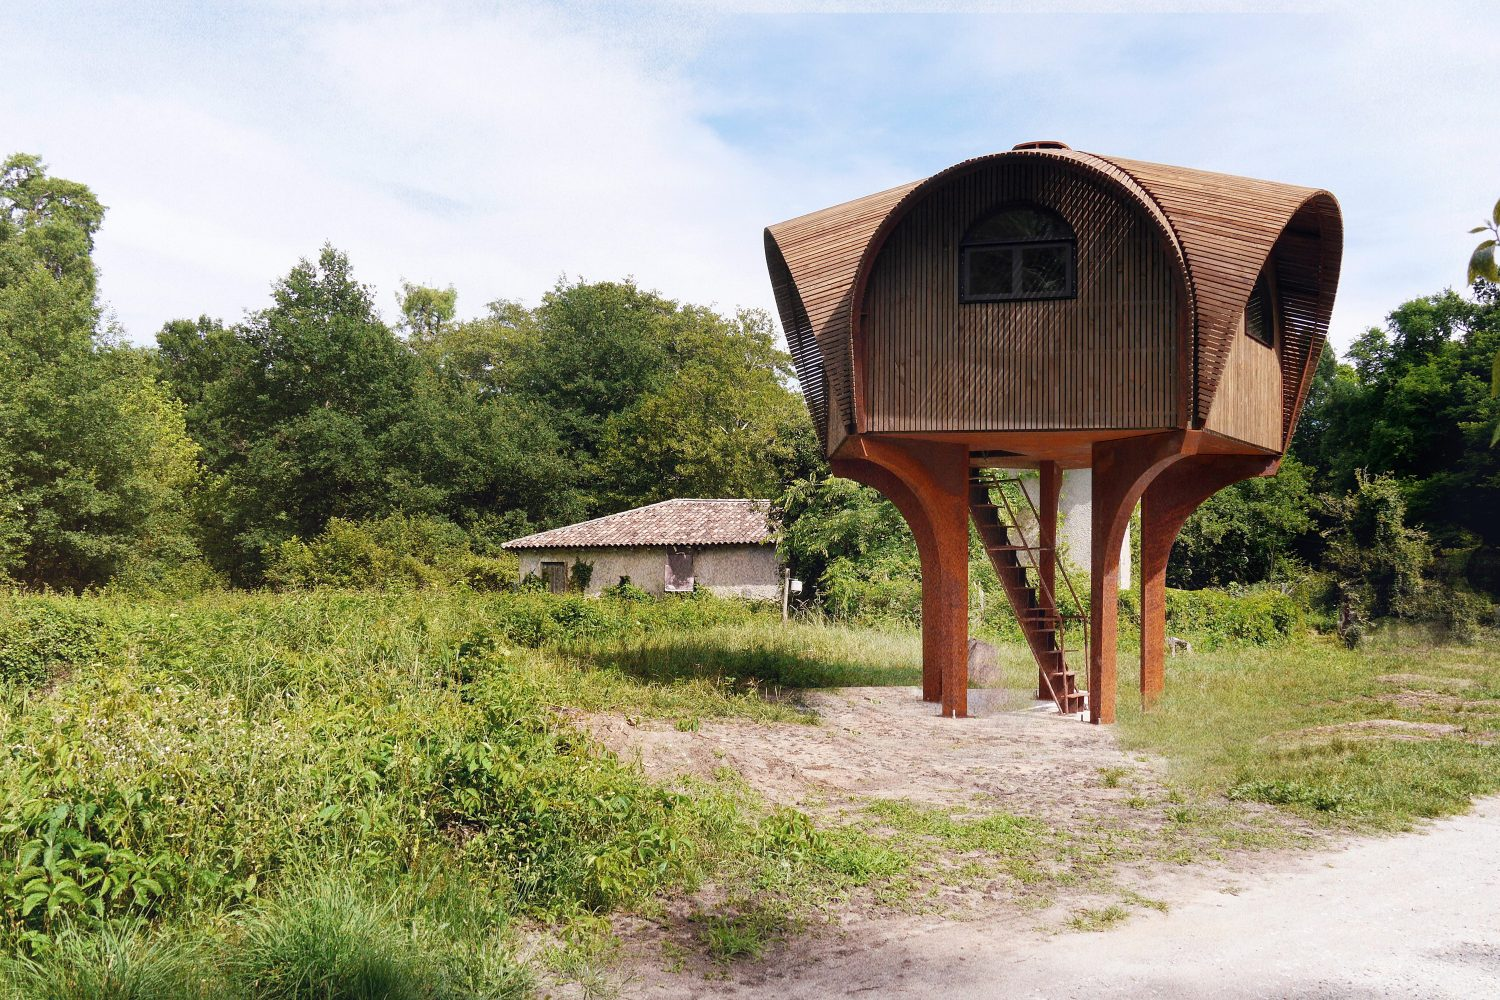 Le Haut Perché | Hiking Shelter by Studio Weave